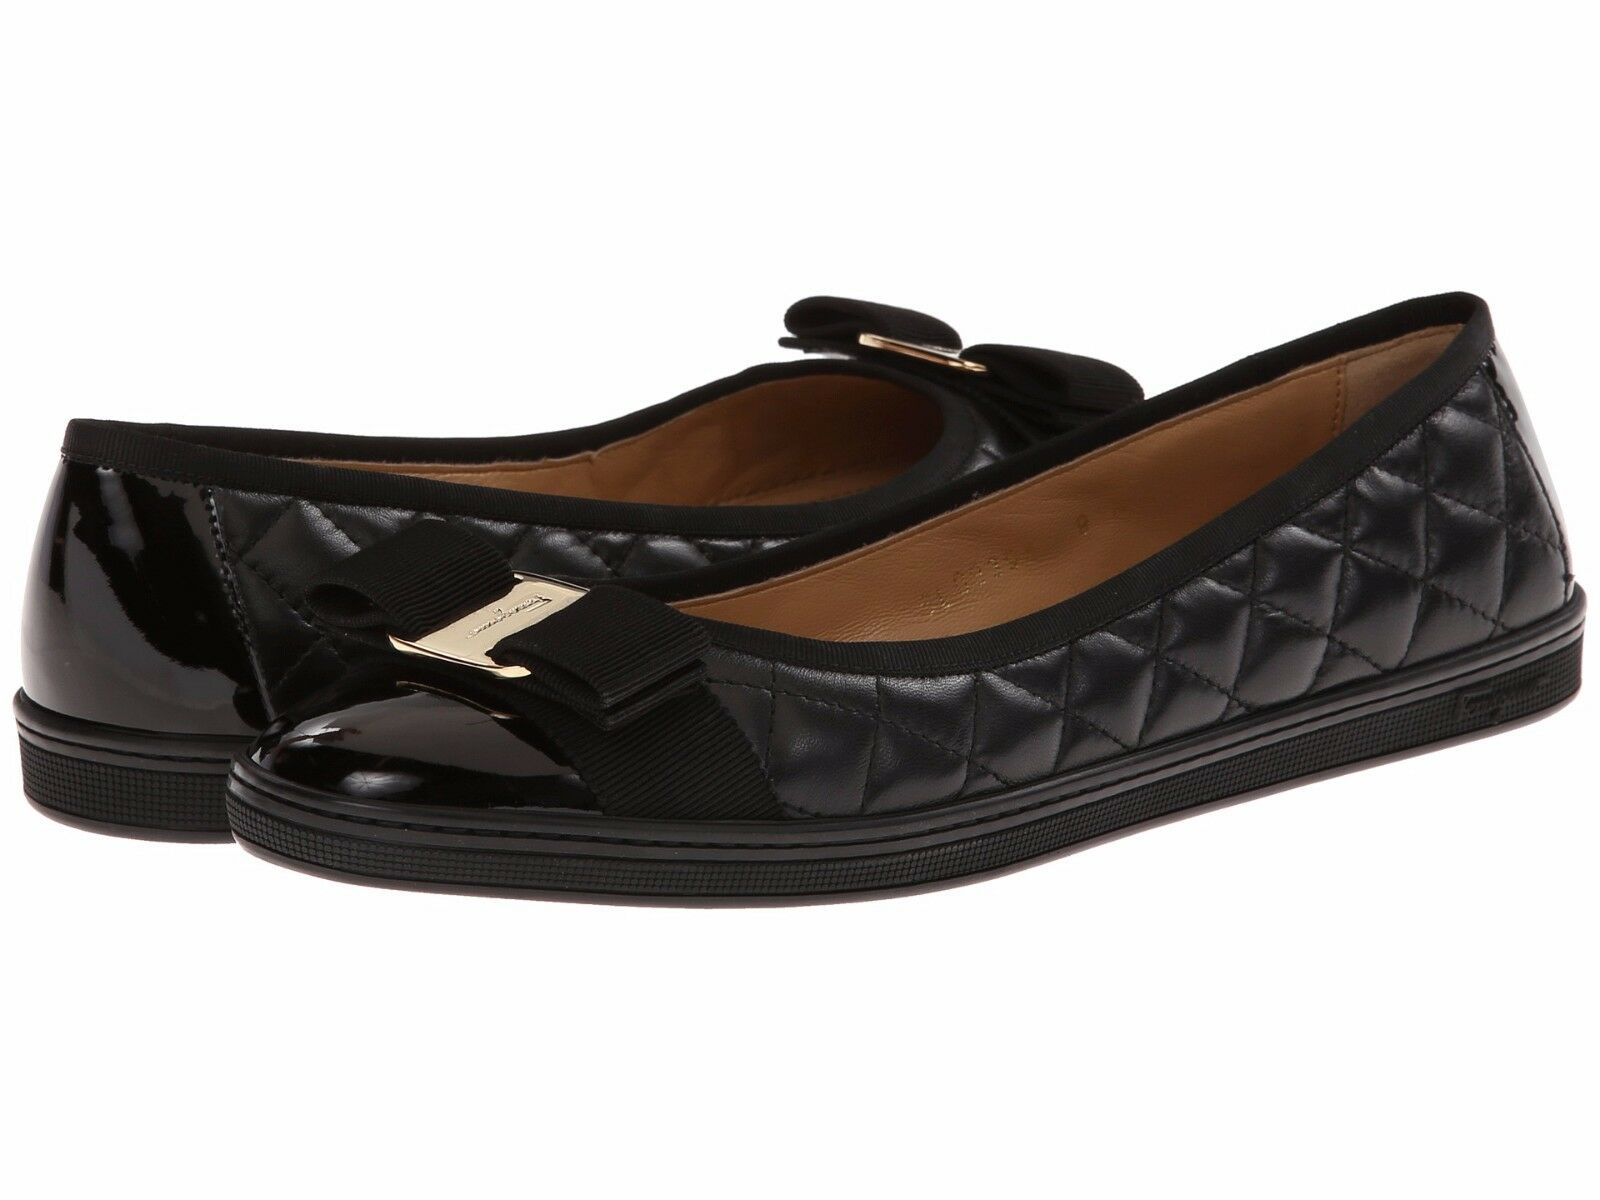 NIB NEW Salvatore Ferragamo Rufina Black quilted quilted quilted flats shoes 6 7 8 8.5 9 10 11 314d13